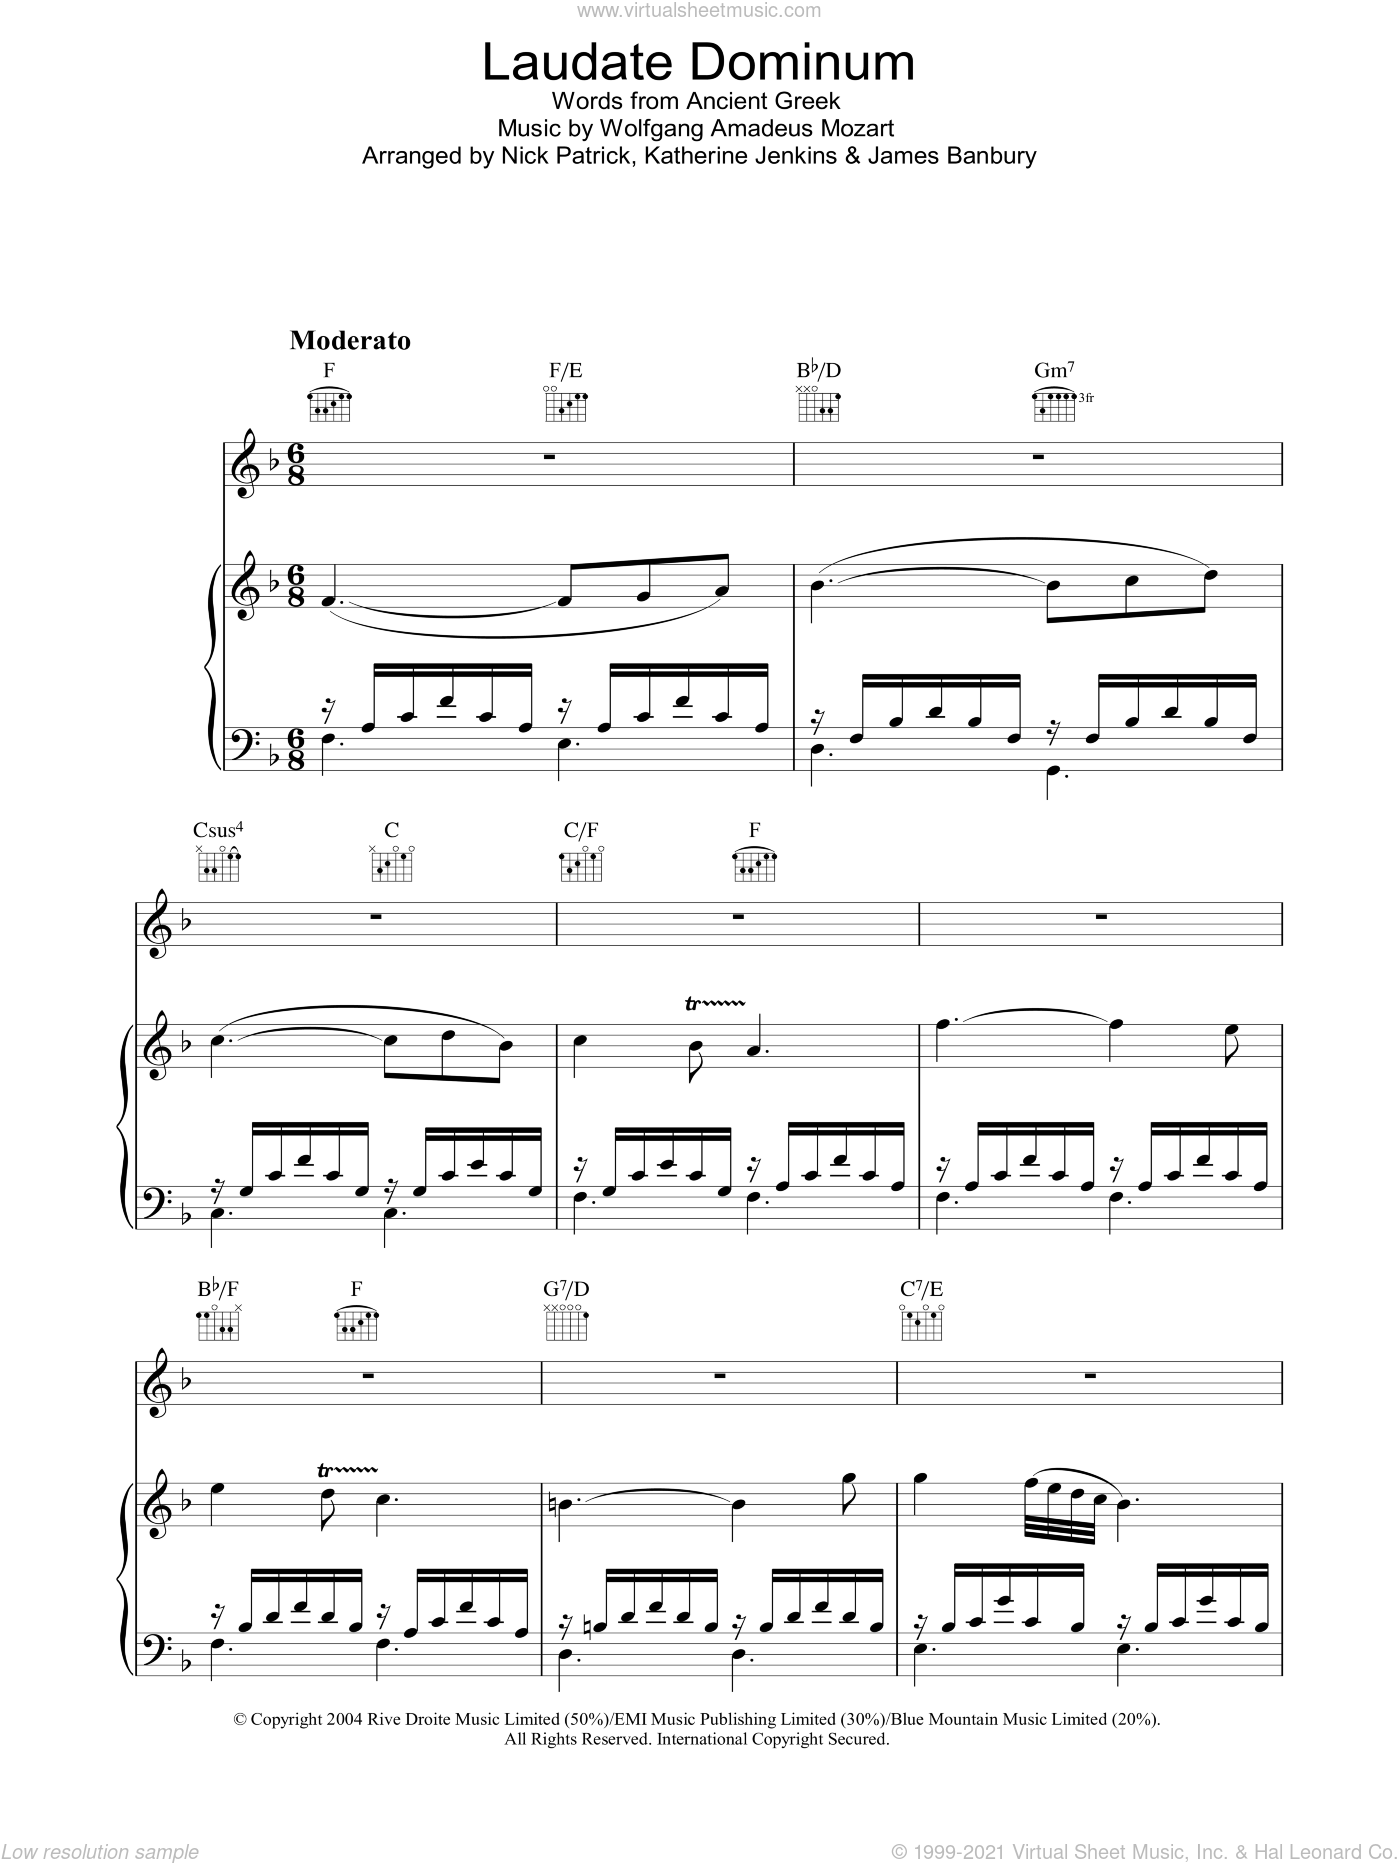 Laudate Dominum sheet music for voice, piano or guitar by Wolfgang Amadeus Mozart. Score Image Preview.